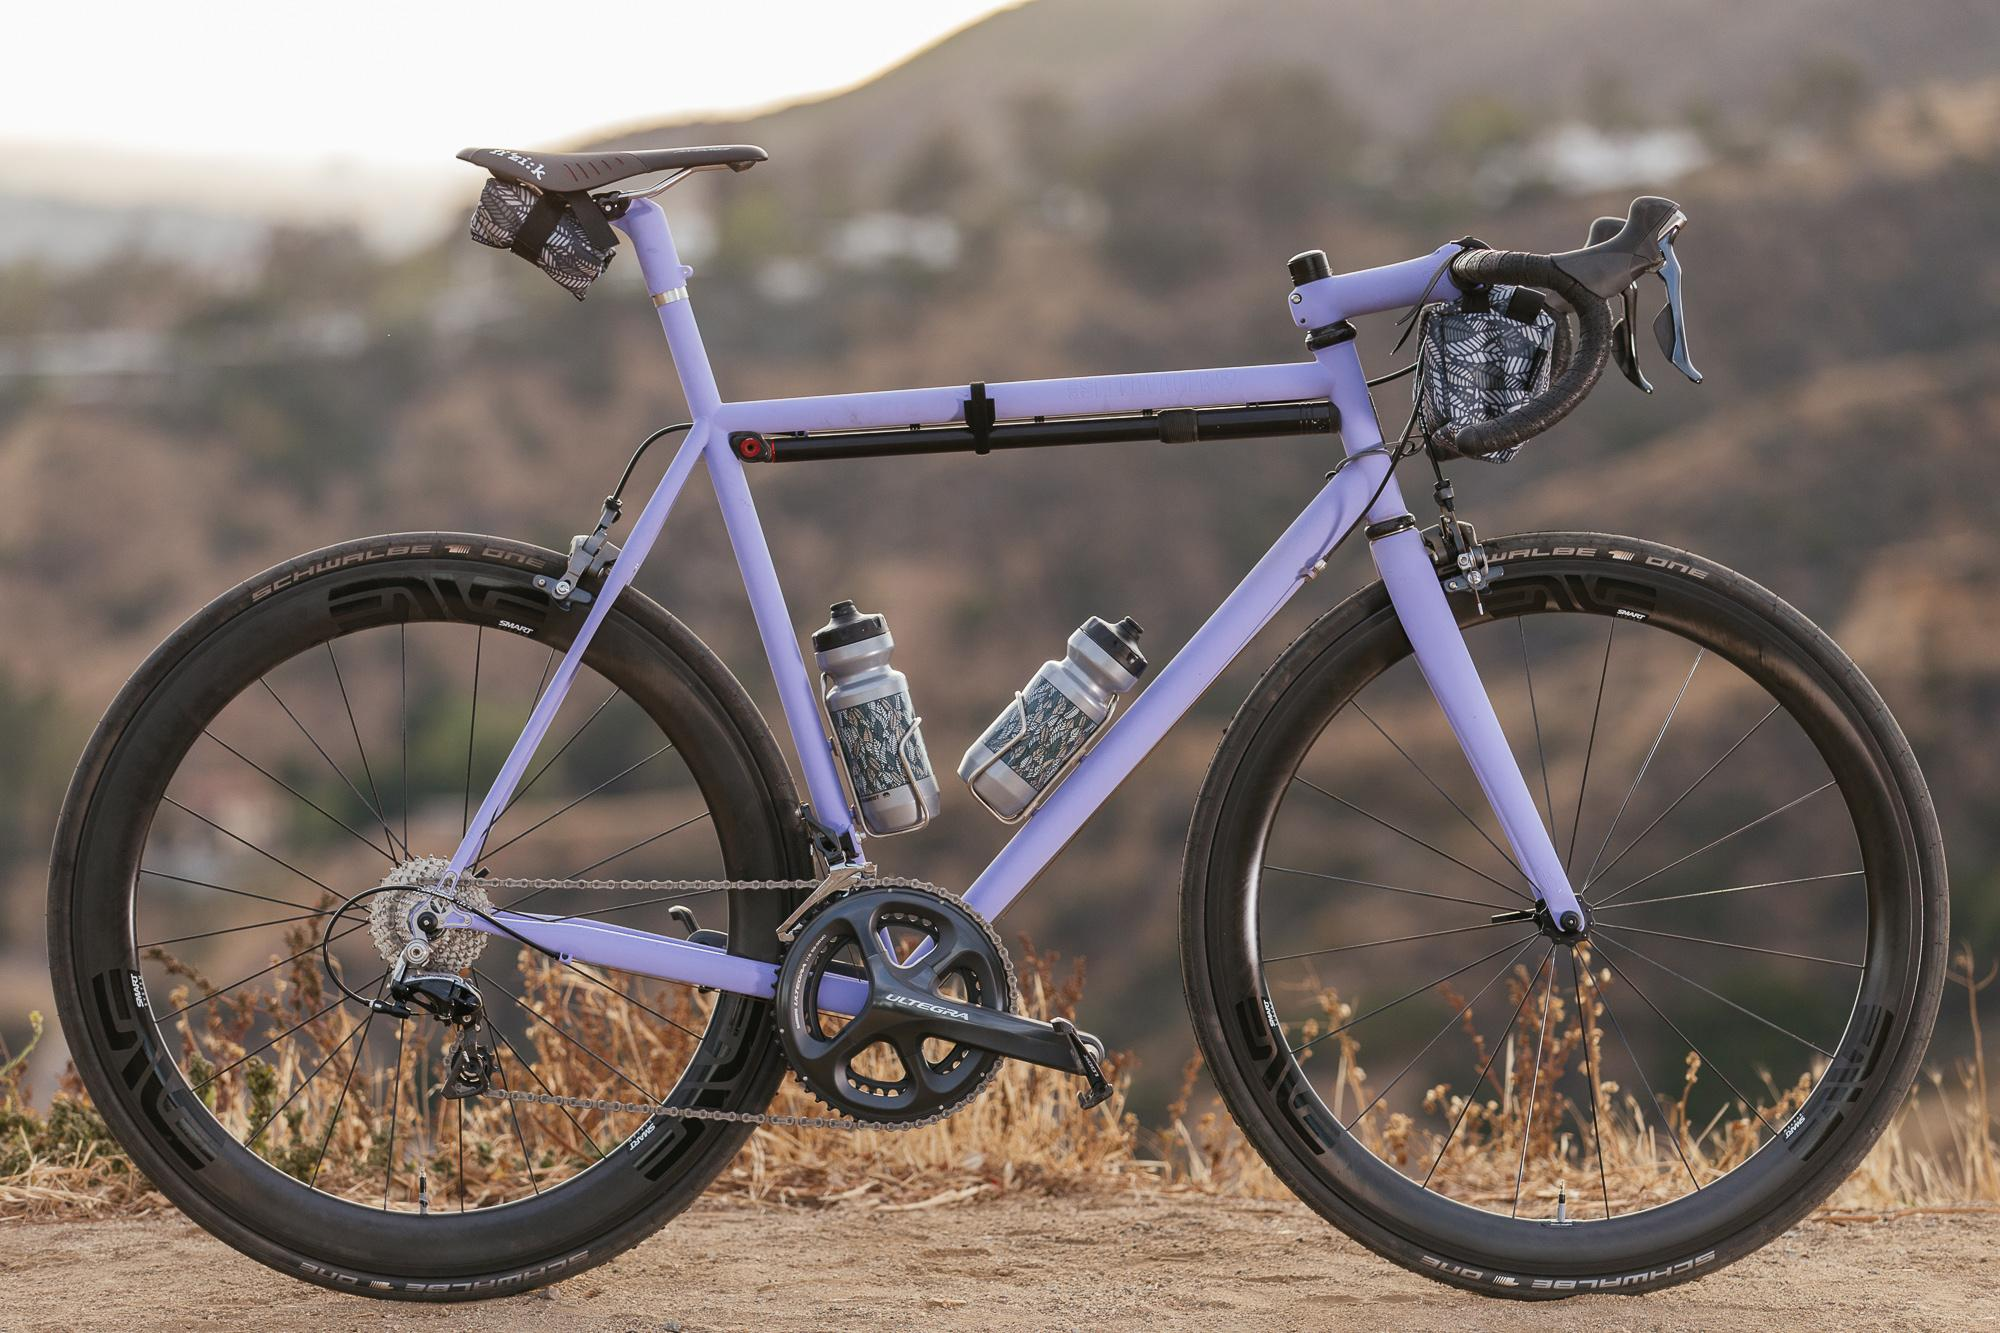 04-The-Speedvagen-OG1-Road-Bike-31